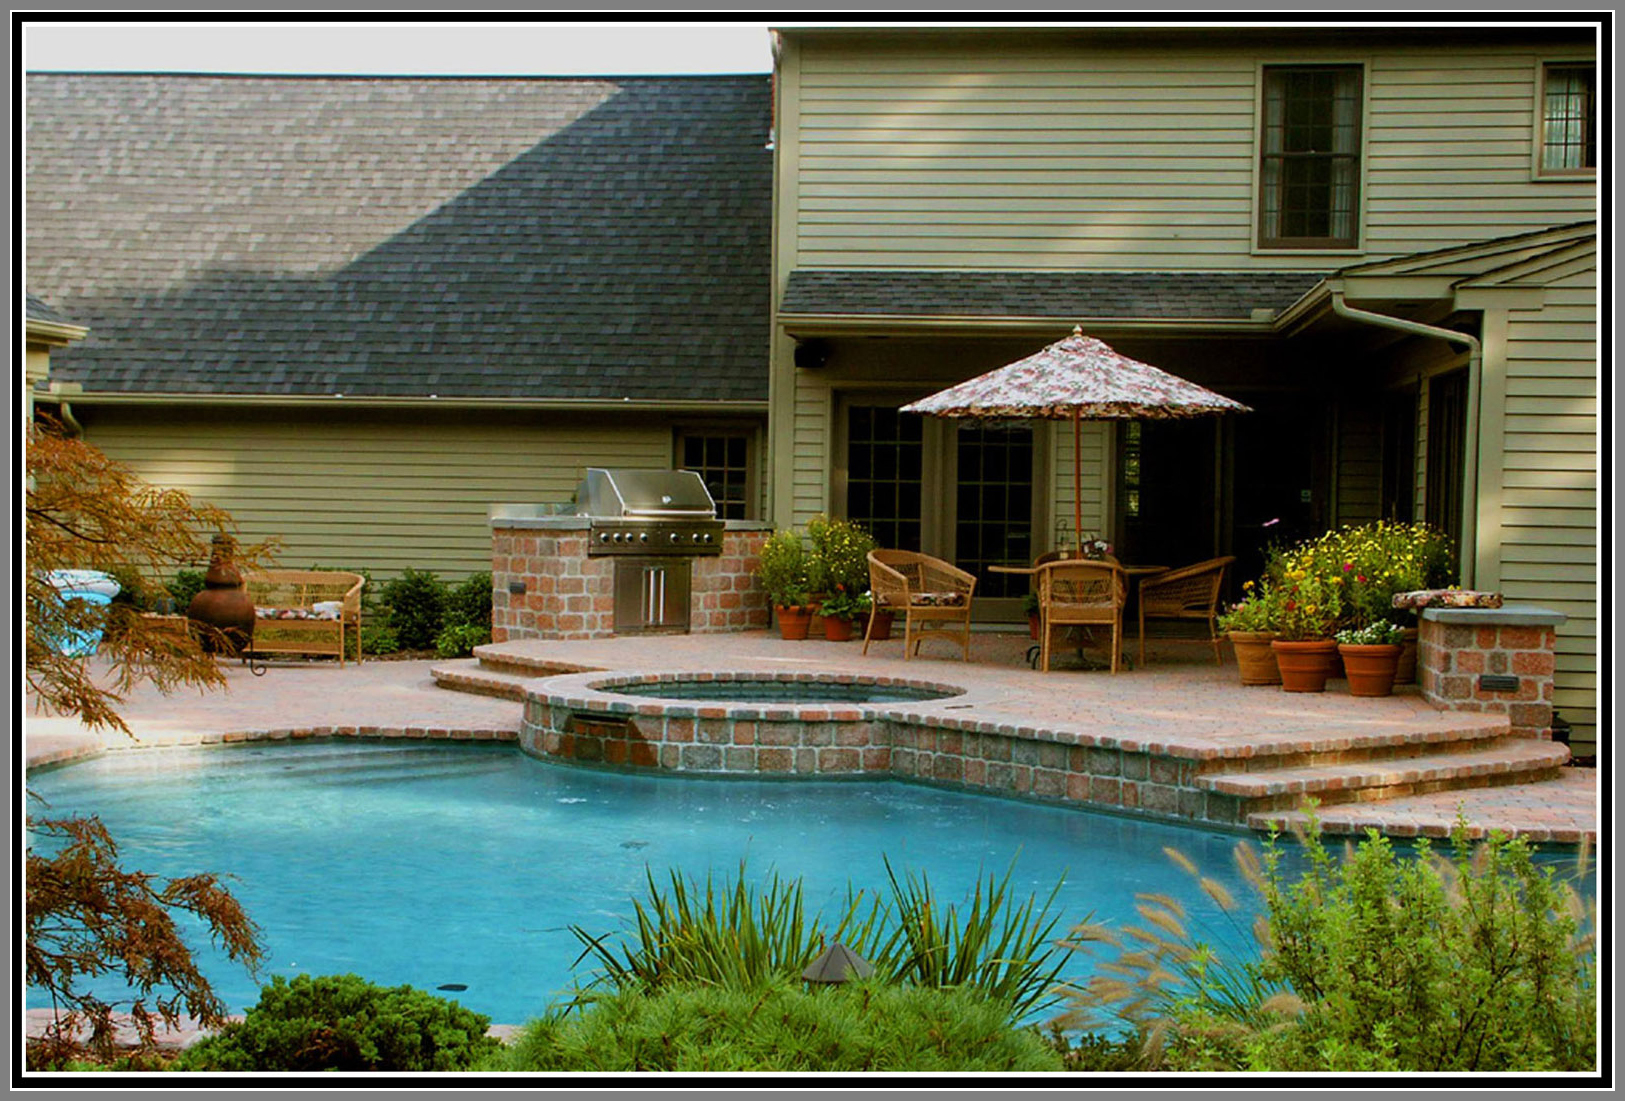 Concrete Paver pool deck and bond beam